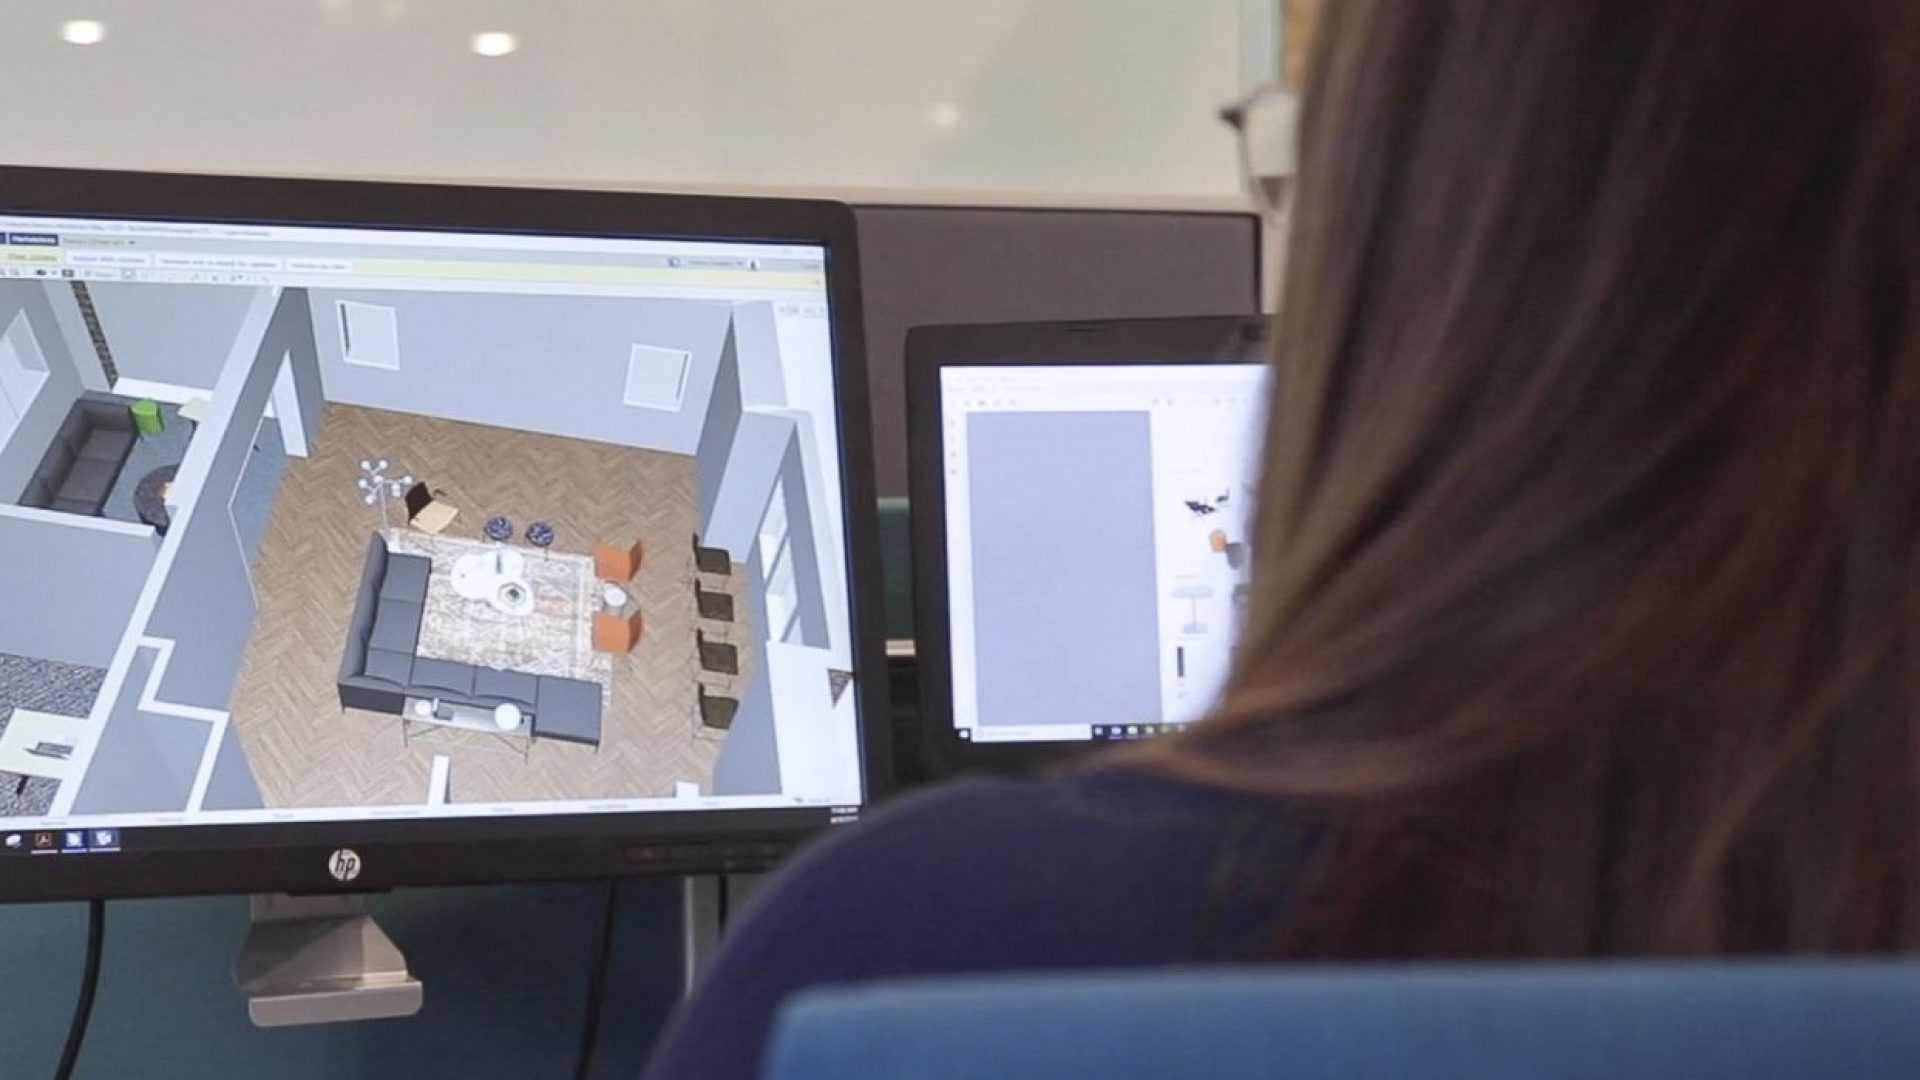 Throughout each step of the design phase, Custer's underlying priority is to implement innovative ways to empower your company to work more efficiently using techniques that transform big-picture challenges into tangible design solutions.